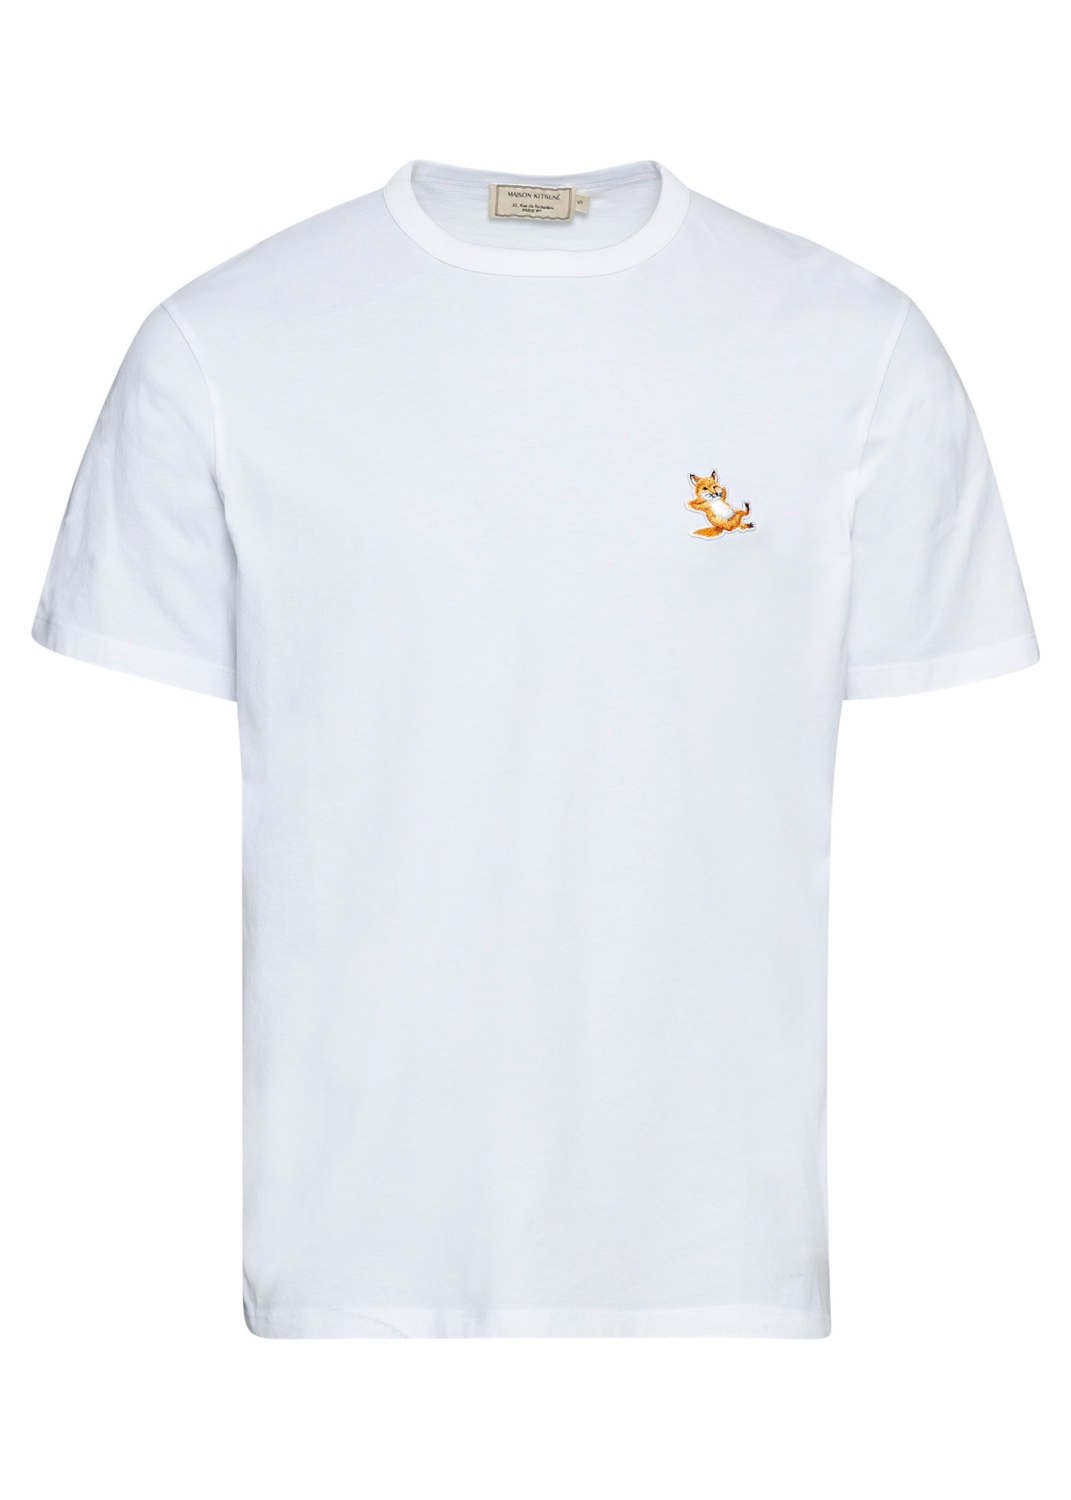 CHILLAX FOX PATCH CLASSIC TEE-SHIRT image number 0